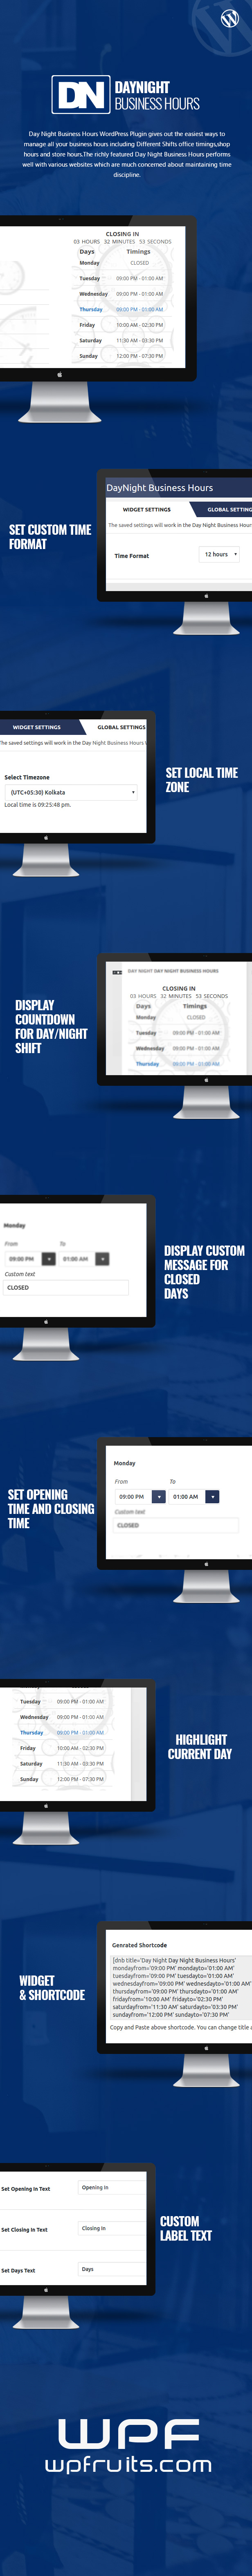 Day Night Business Hours WordPress Plugin (Utilities)